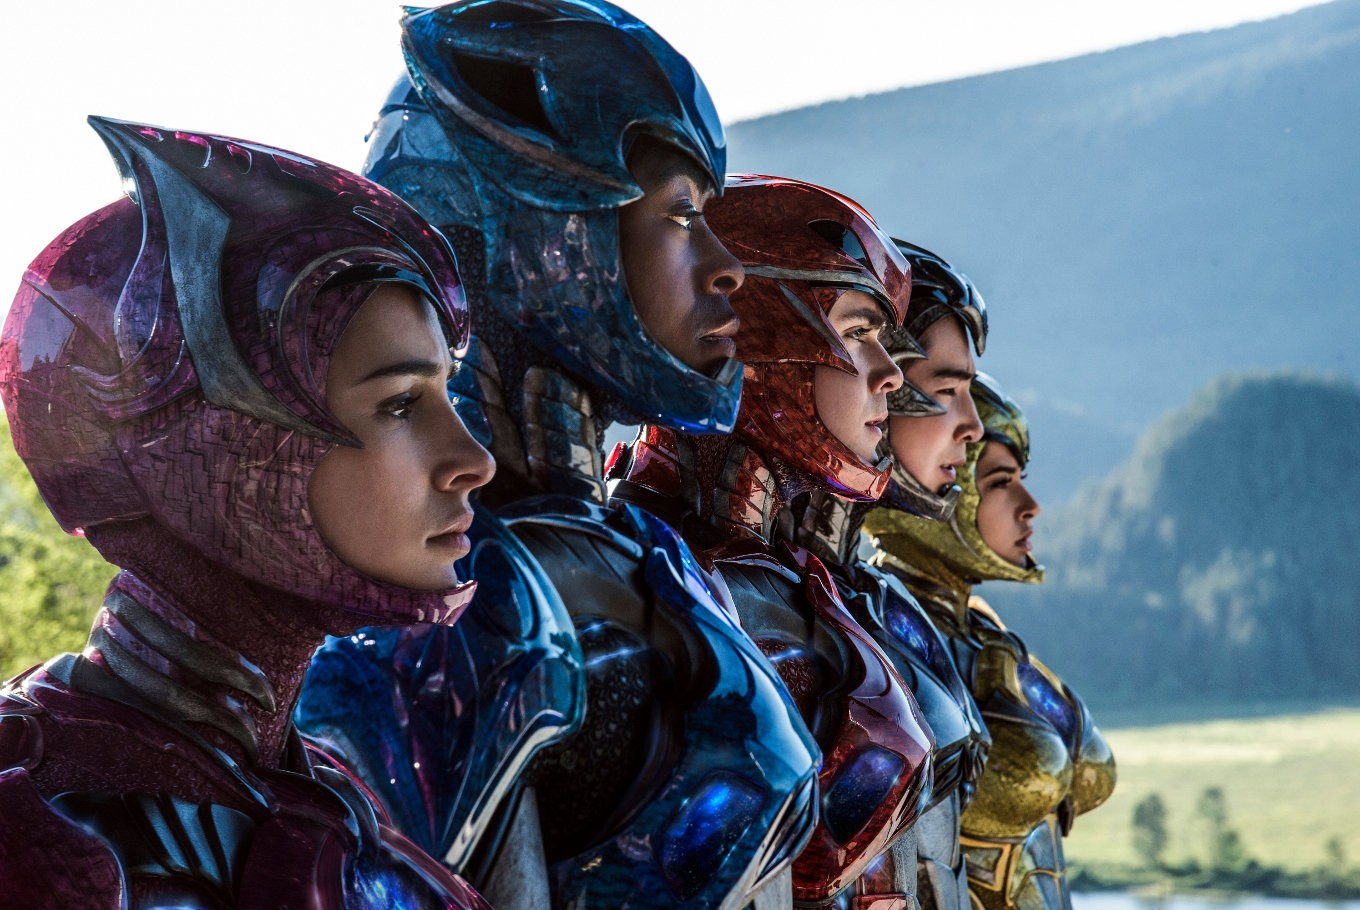 Review: So-so 'Power Rangers' reboot is cheesy, self-serious